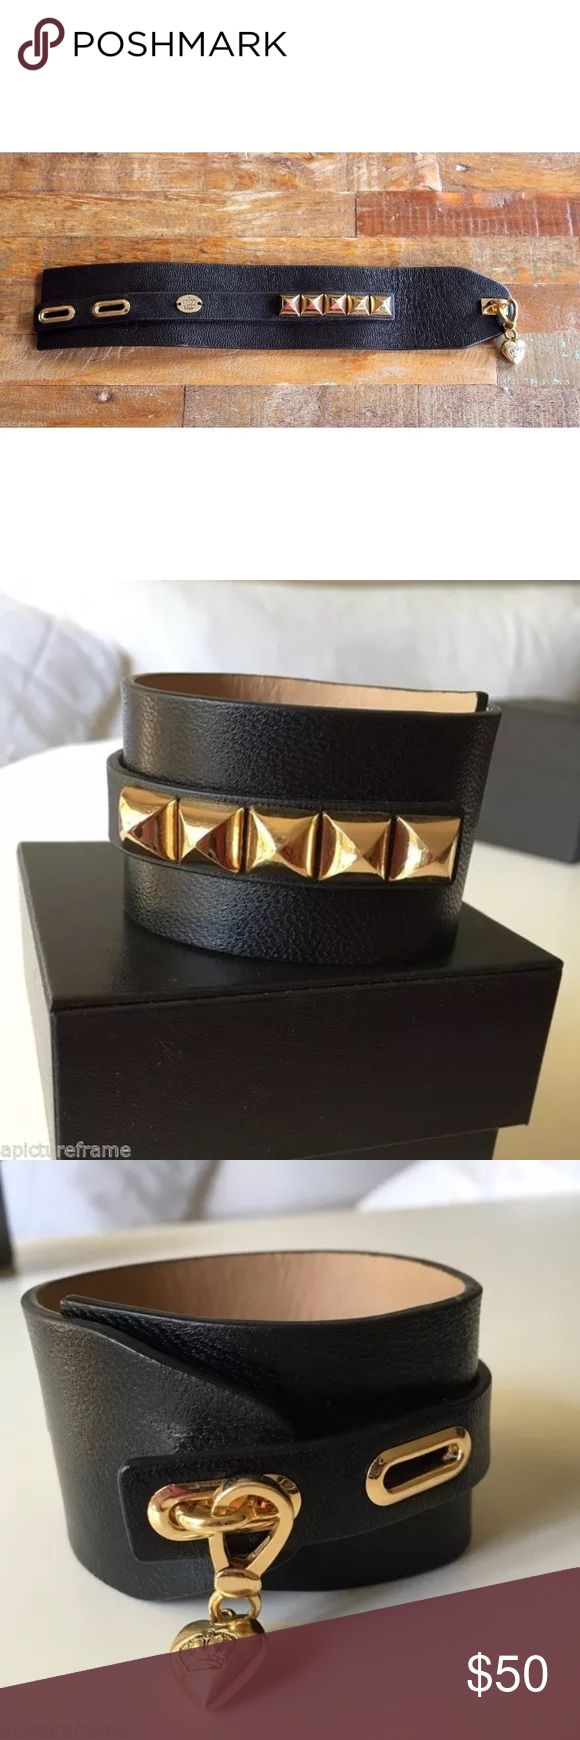 Juicy Couture Leather Bracelet w/ Removable Charm Up for sale is a Juicy Couture You Keep me Hangin on black leather cuff bracelet with gold pyramid studs and one removable heart charm / pendant.  Retail: $98  Sold out everywhere! Juicy Couture Jewelry Bracelets